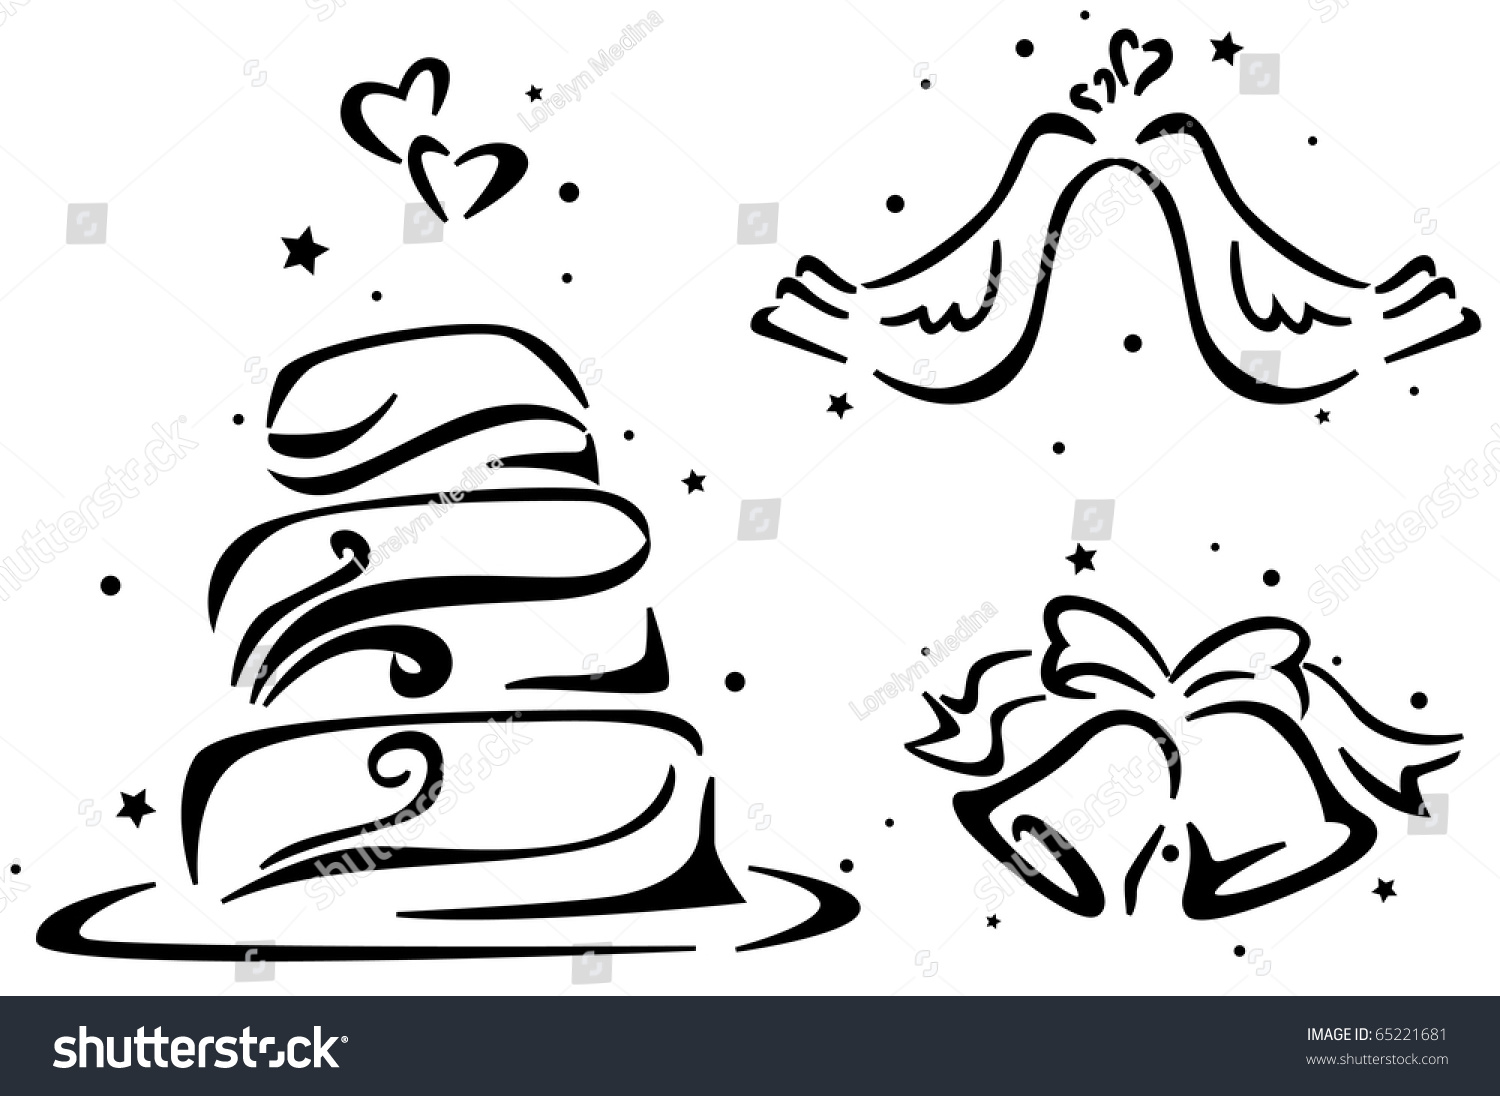 Wedding Stencil Featuring A Wedding Cake Wedding Bells And A Pair Of